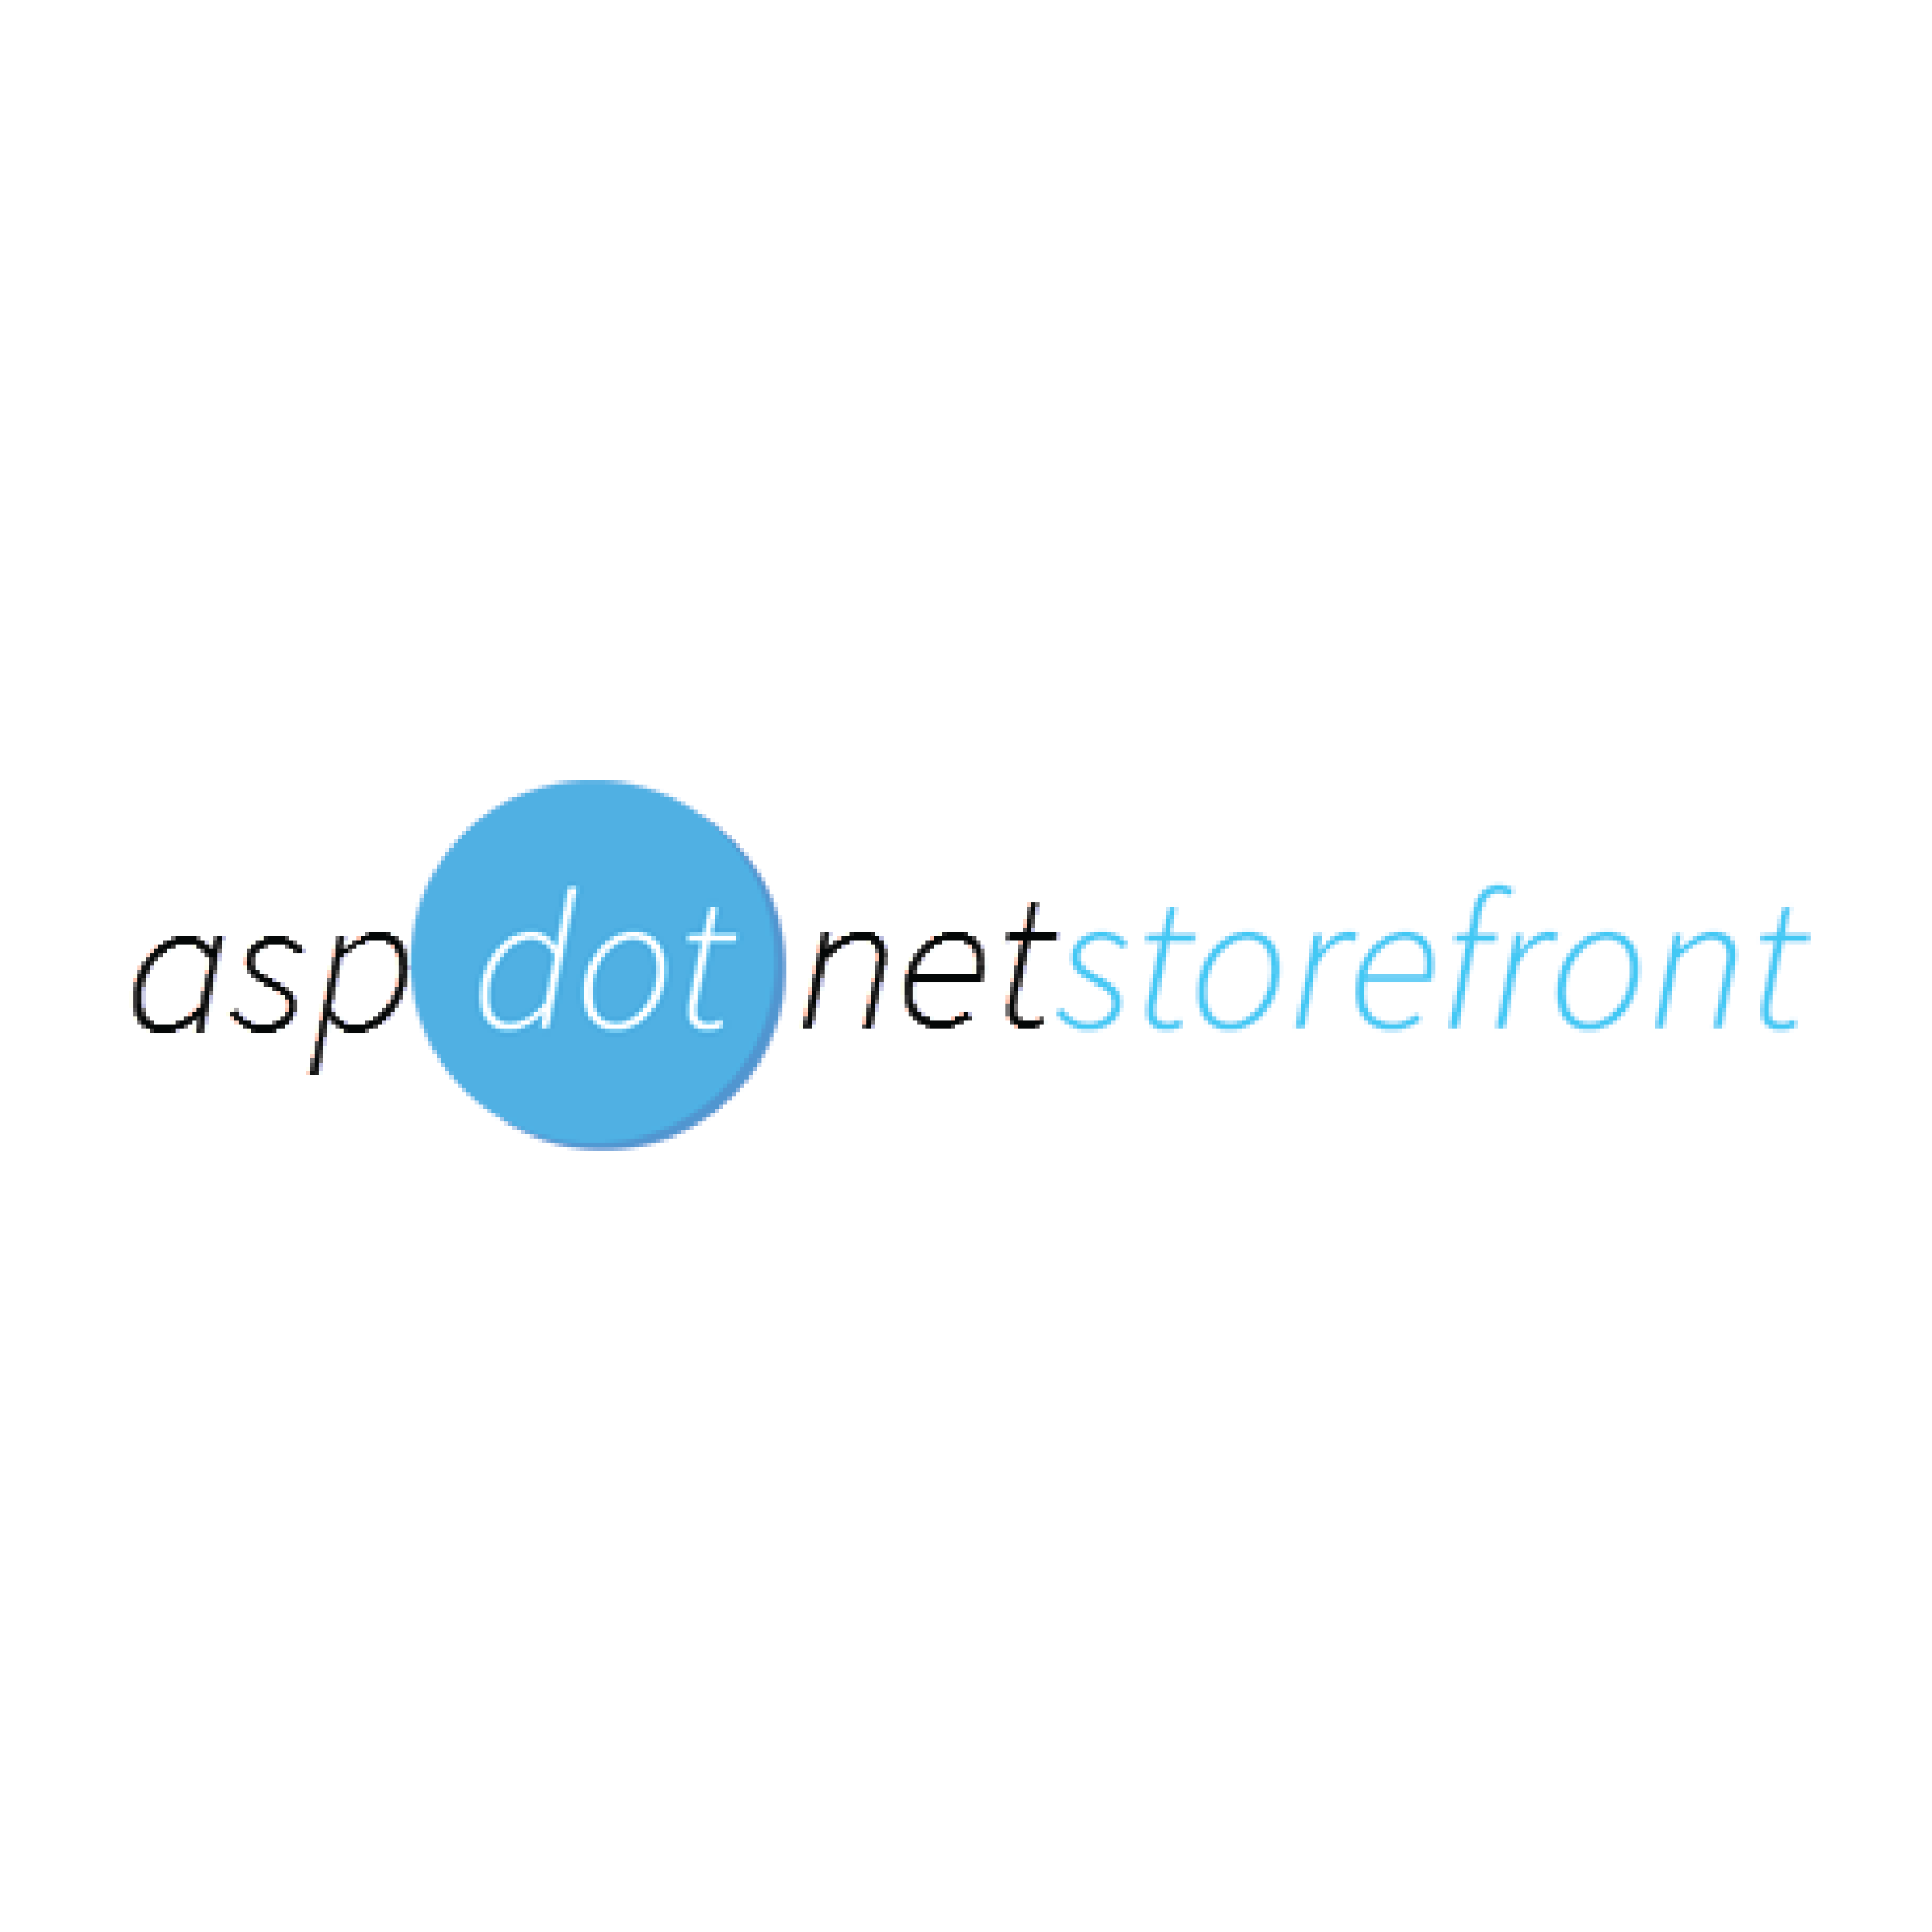 asp dot net storefront Shipedge Integration